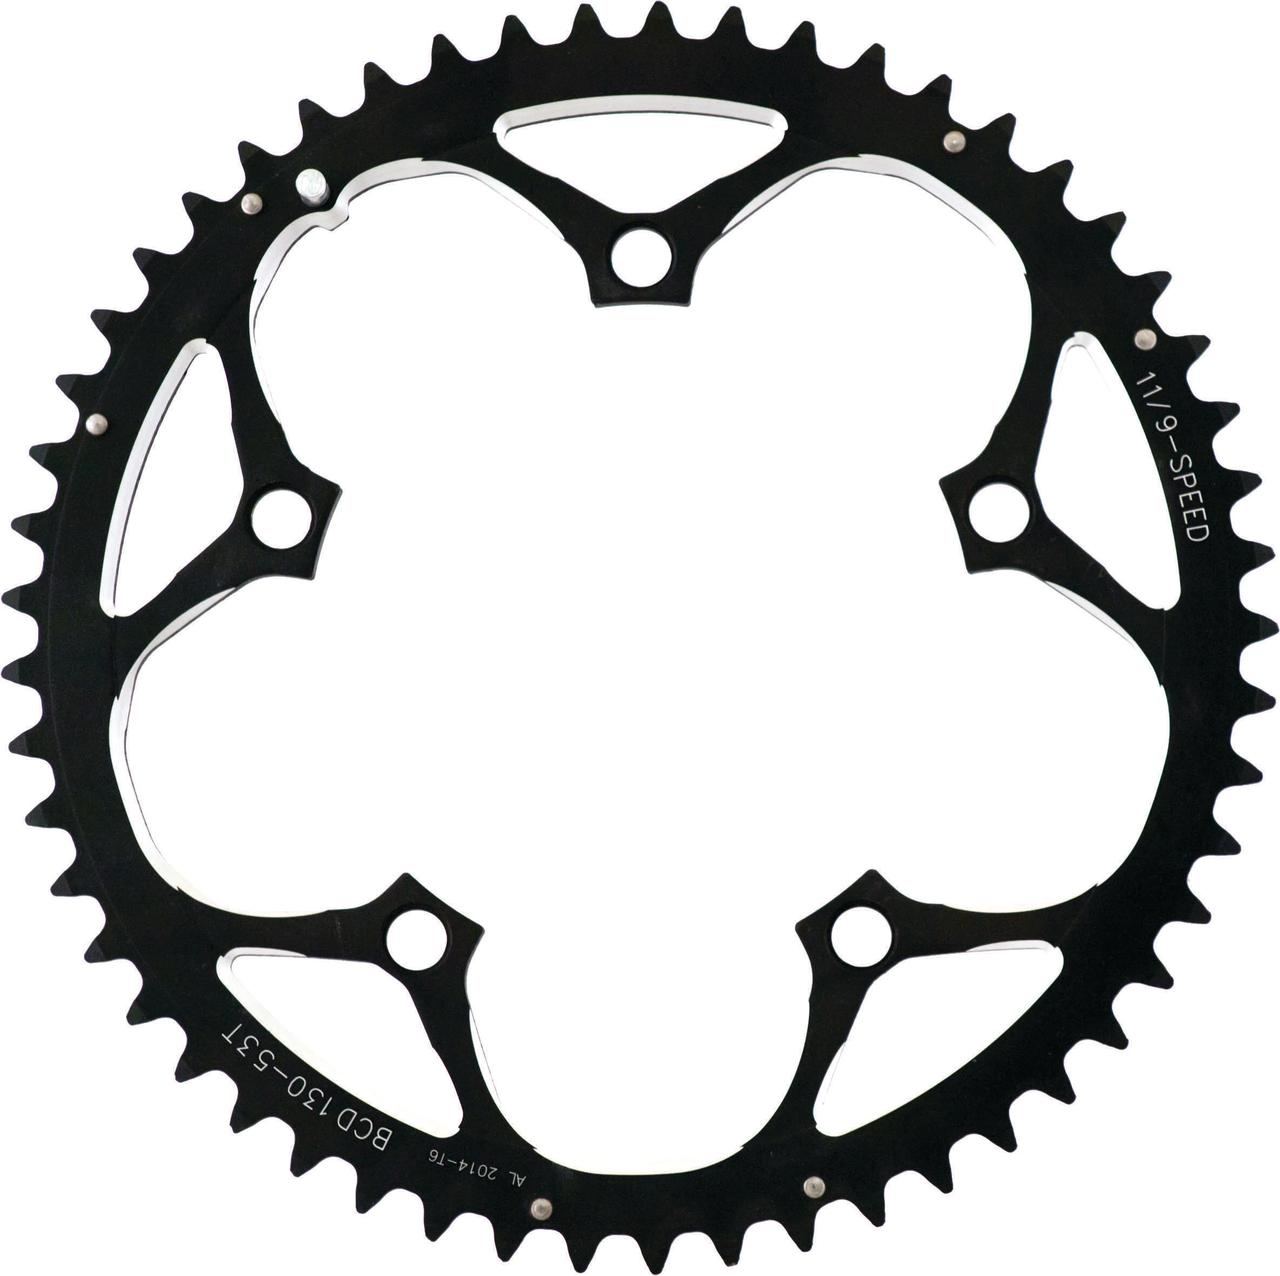 ACTION 130MM 53T BLK/SIL 3/32 RAMPED CHAINRING CR0375